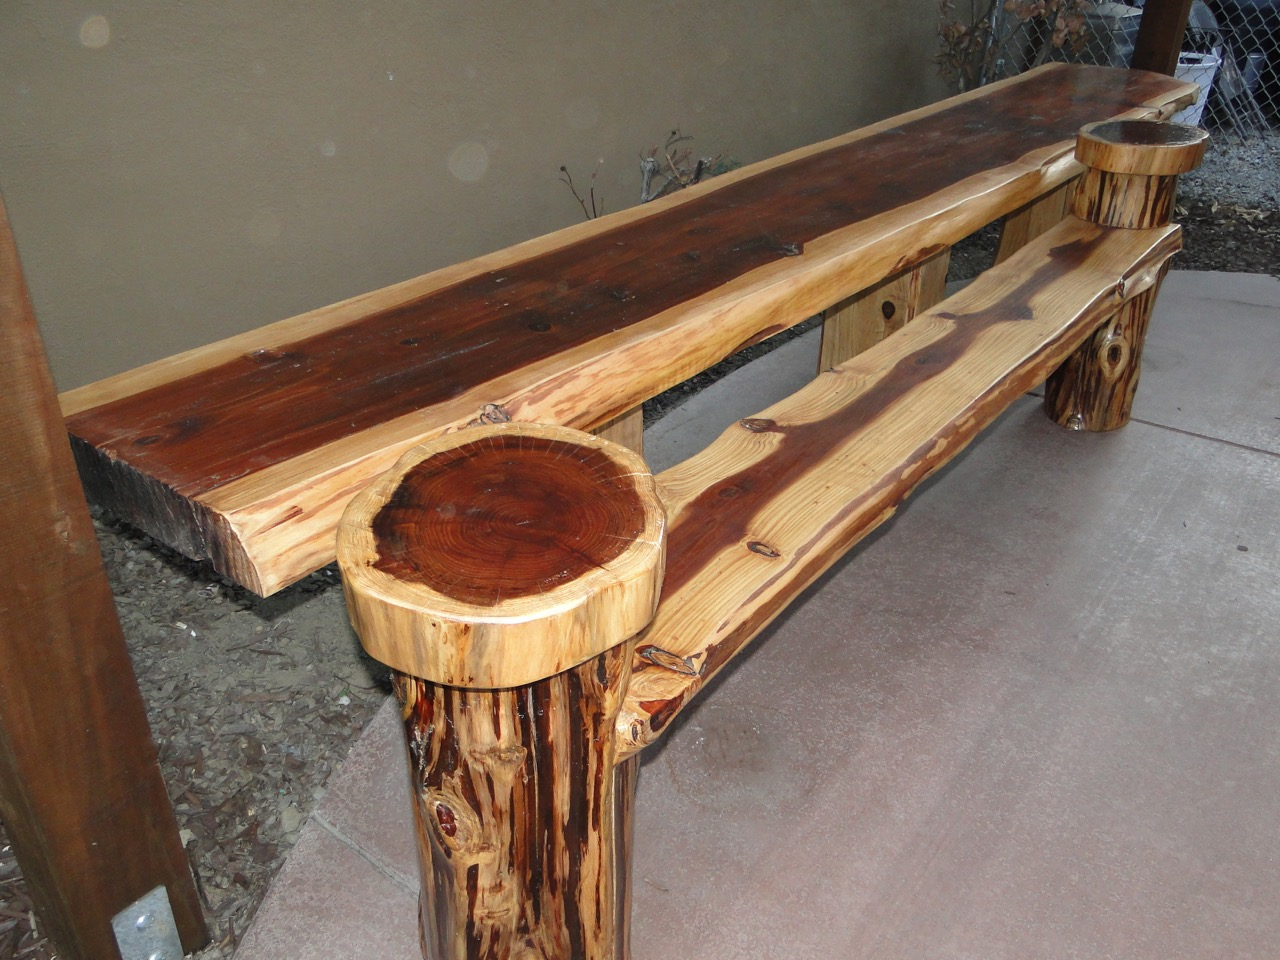 A1 Stump Reclaimed Furniture - 110